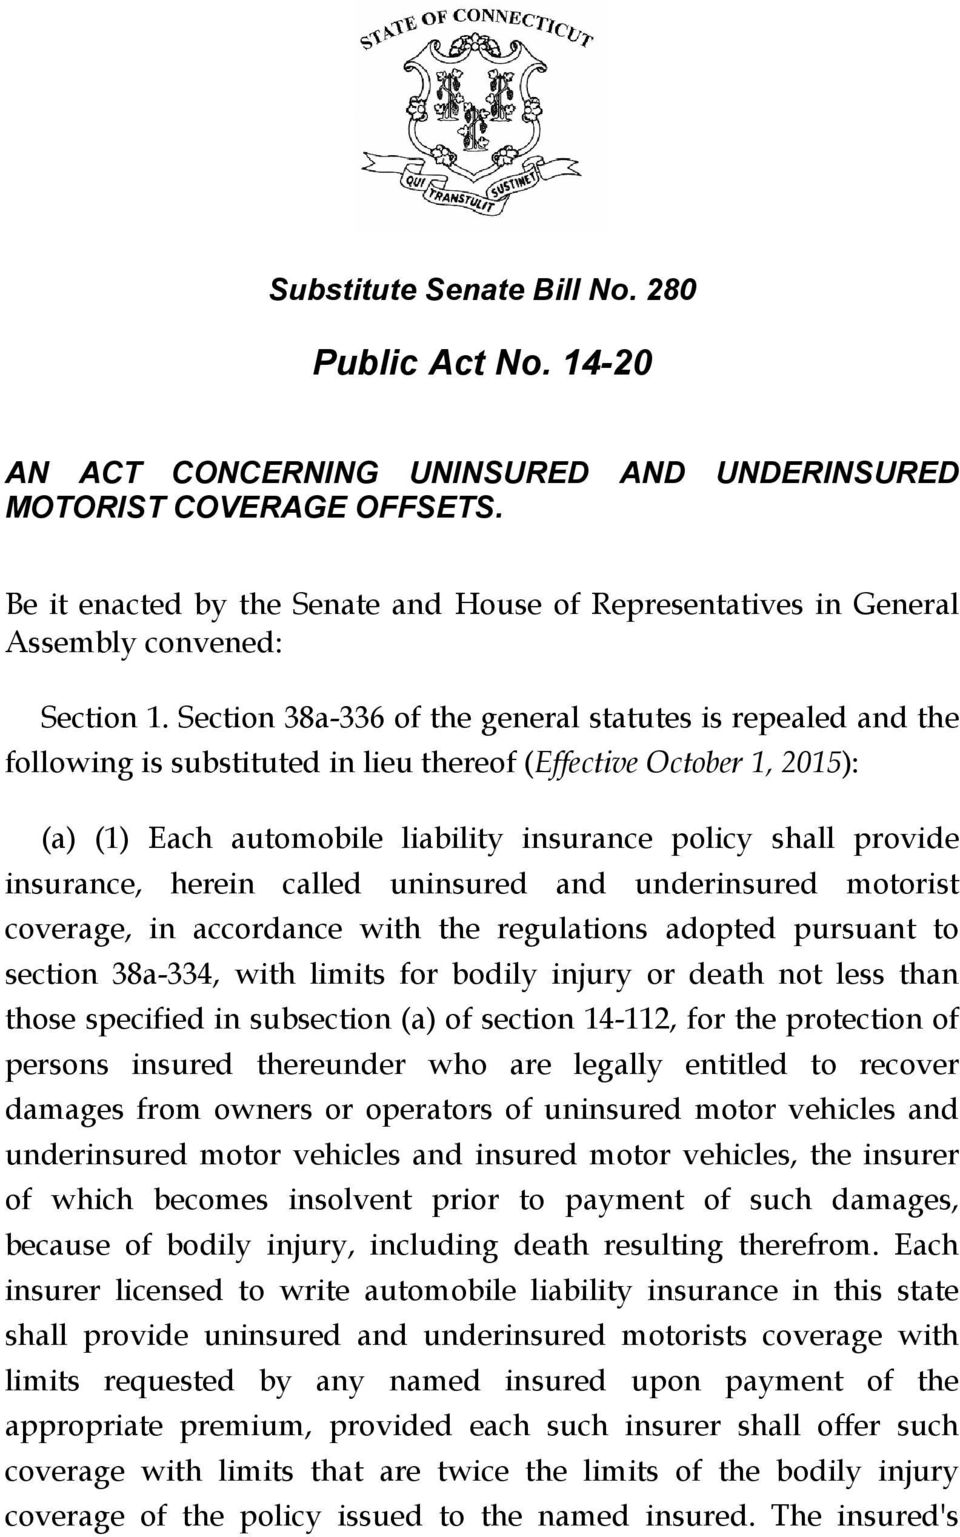 insurance, herein called uninsured and underinsured motorist coverage, in accordance with the regulations adopted pursuant to section 38a-334, with limits for bodily injury or death not less than